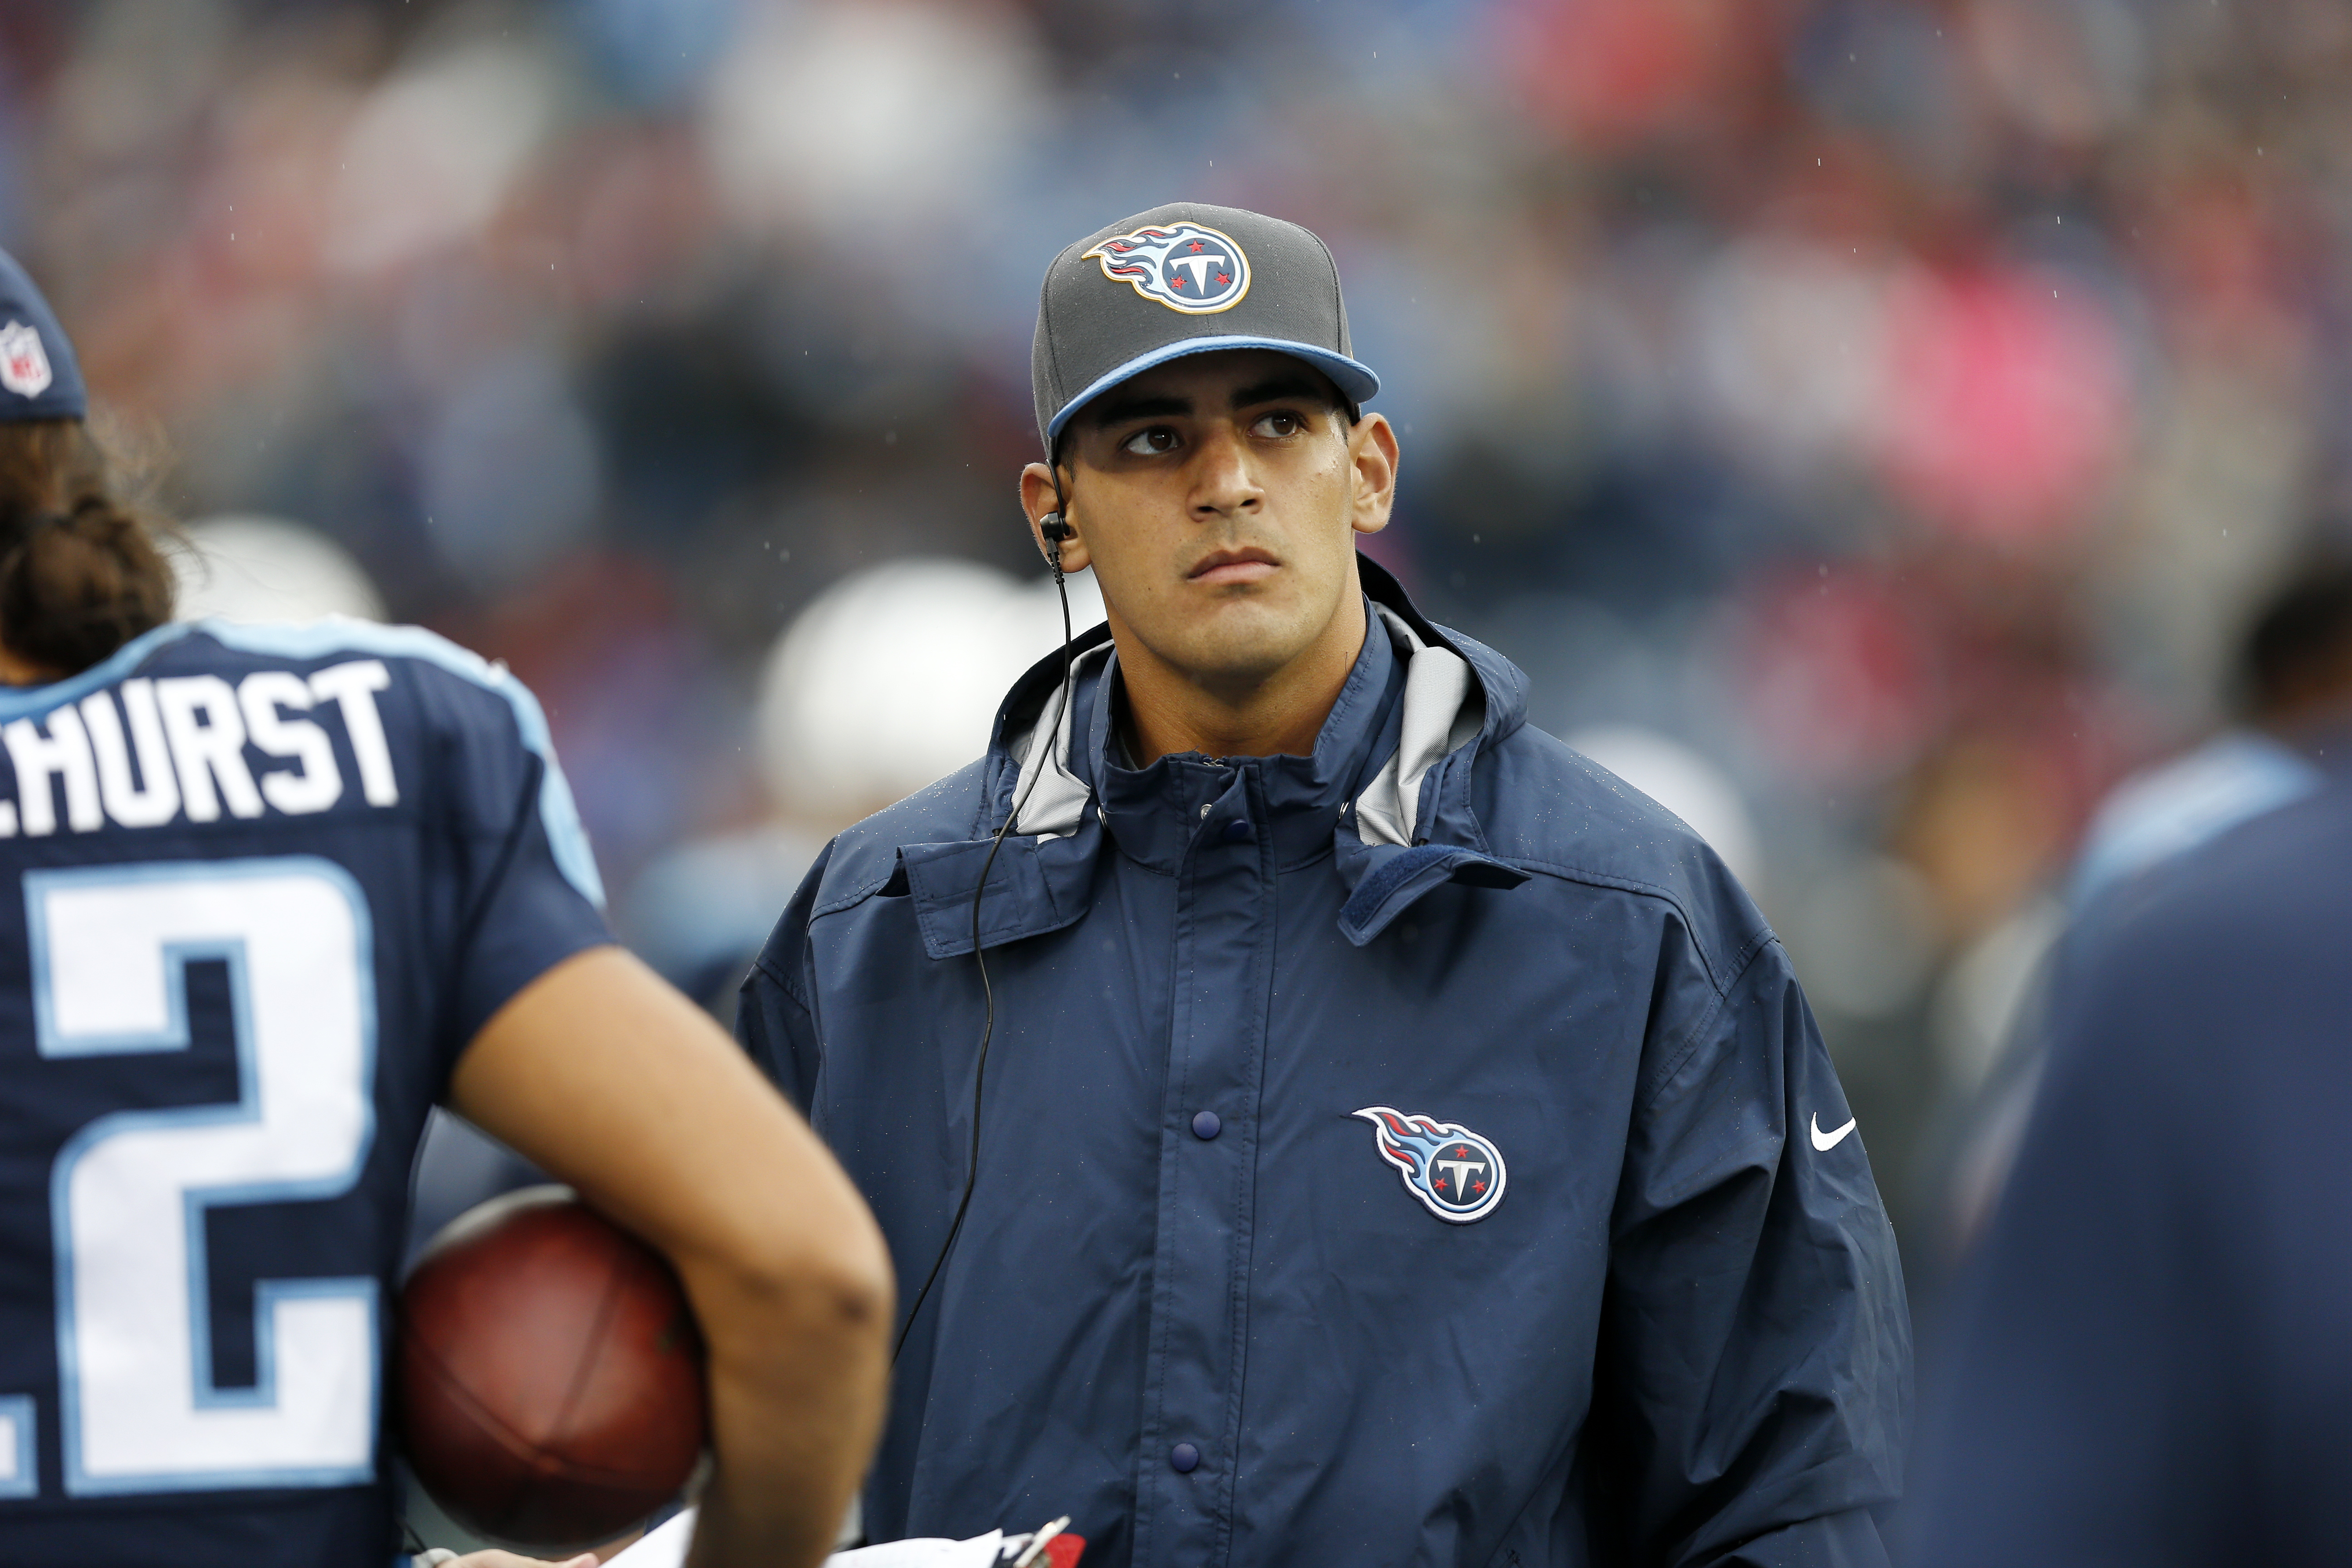 FILE - In this Oct. 25, 2015, file photo, injured Tennessee Titans quarterback Marcus Mariota watches the scoreboard in the second half of an NFL football game against the Atlanta Falcons in Nashville, Tenn. Mariota has been able to practice in a limited